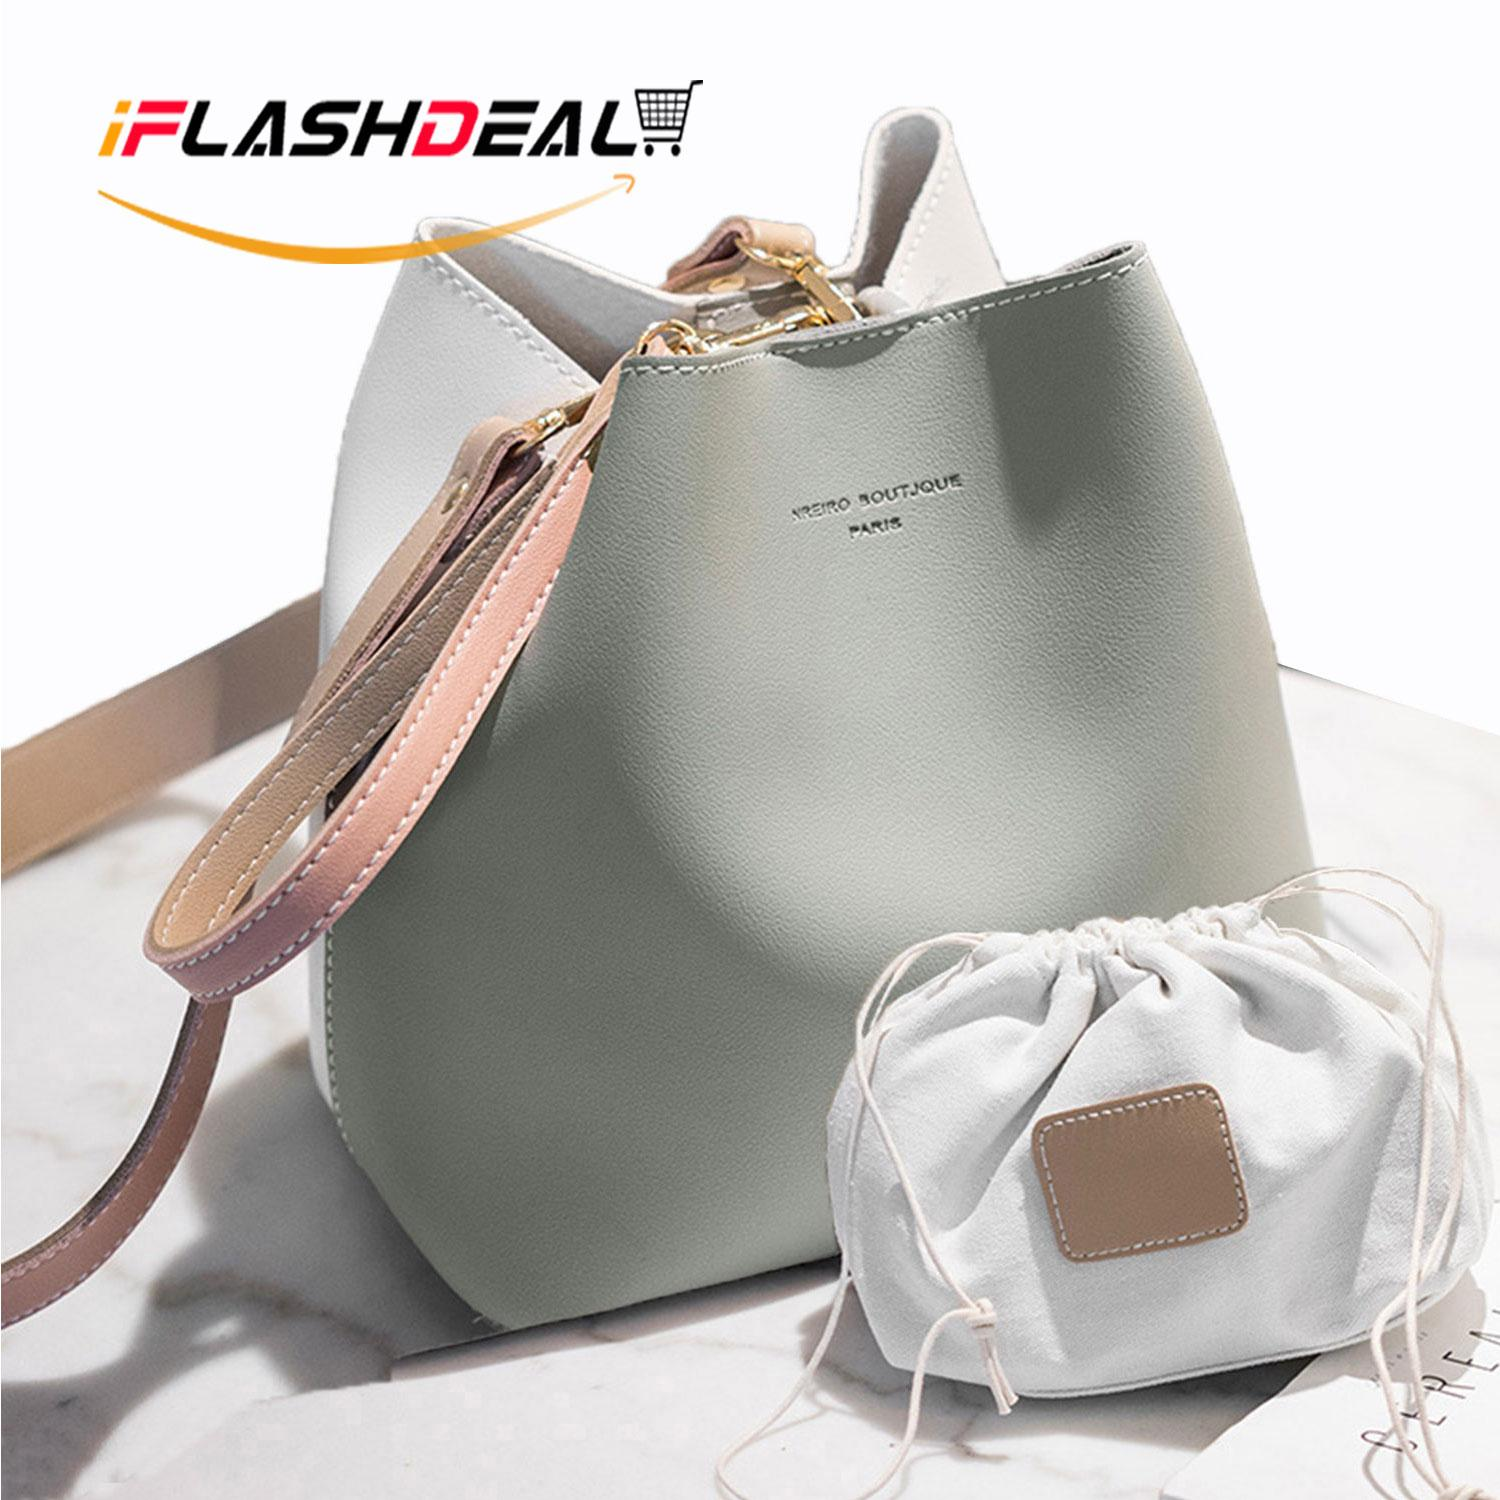 eb6b61ab62a6 iFlashDeal Sling Bag Handbags Women Crossbody Shoulder Bags Soft PU Leather  Messenger Tote Pouch Hand Bag Cross Body Bags